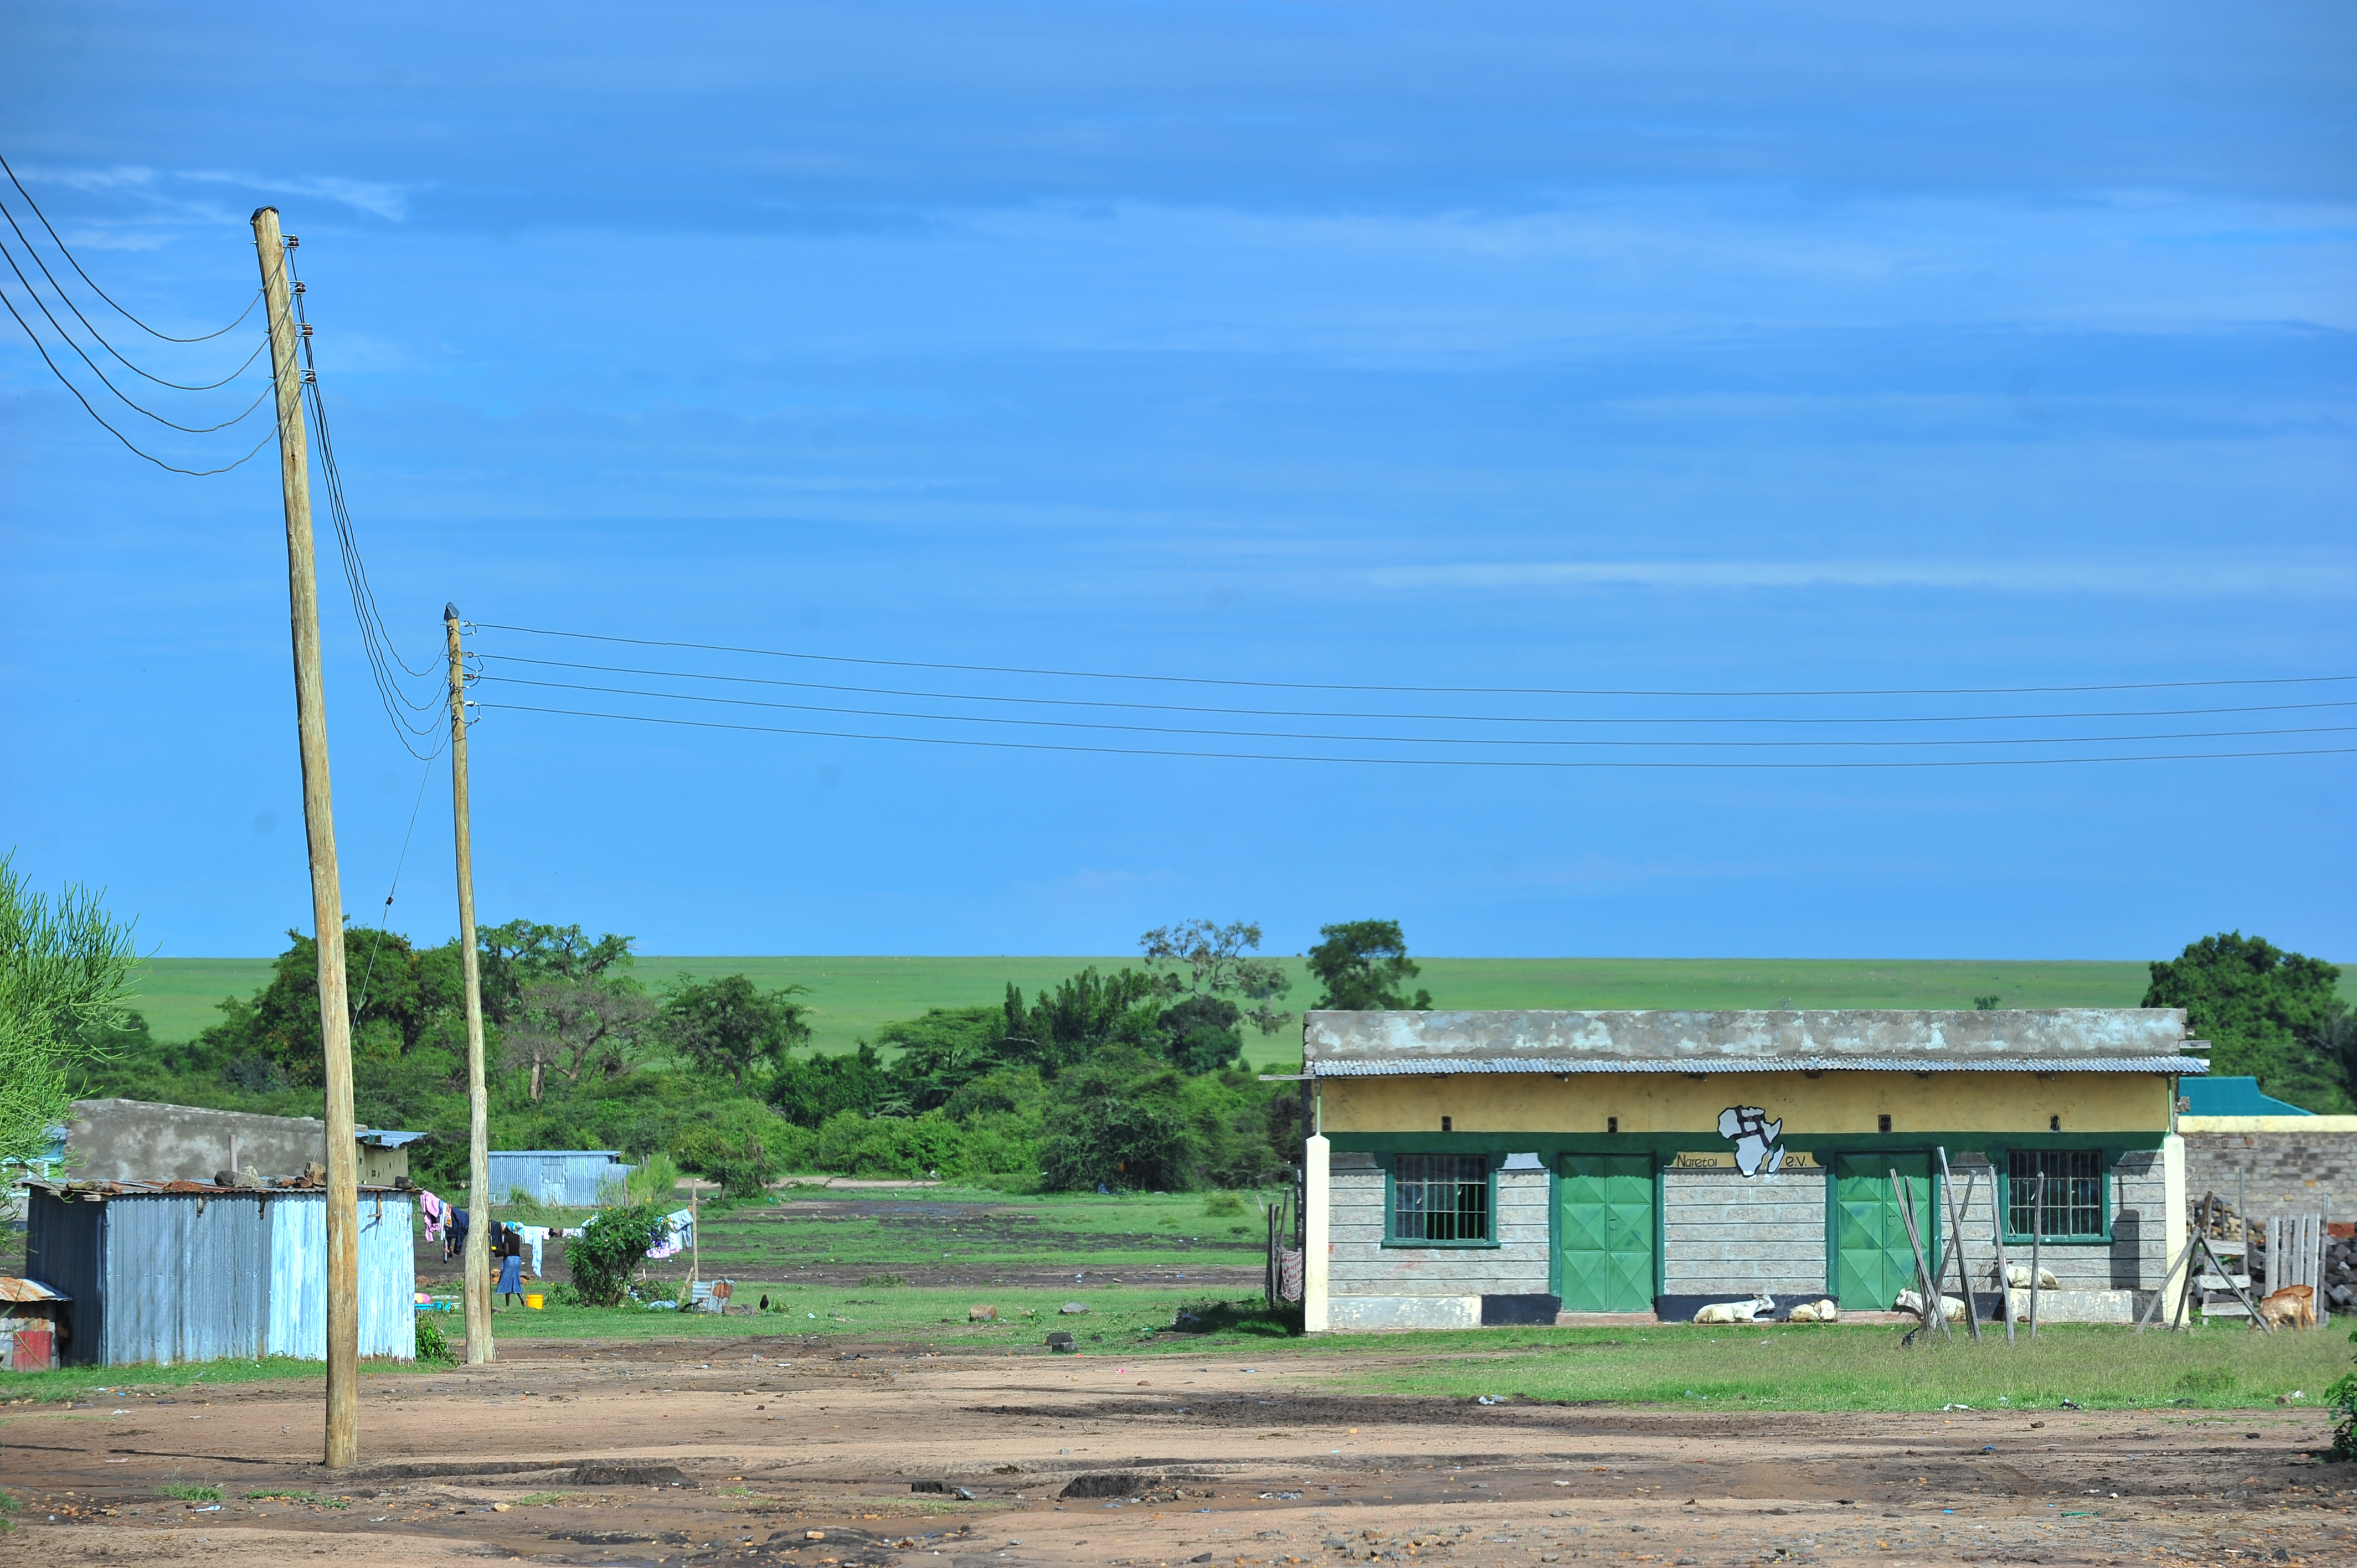 Complete power lines along domestic residences in Talek town. Through Talek Power, GIZ and other partners have constructed a solar power grid which will connect residents of Talek town in Narok to power for domestic and commercial use.